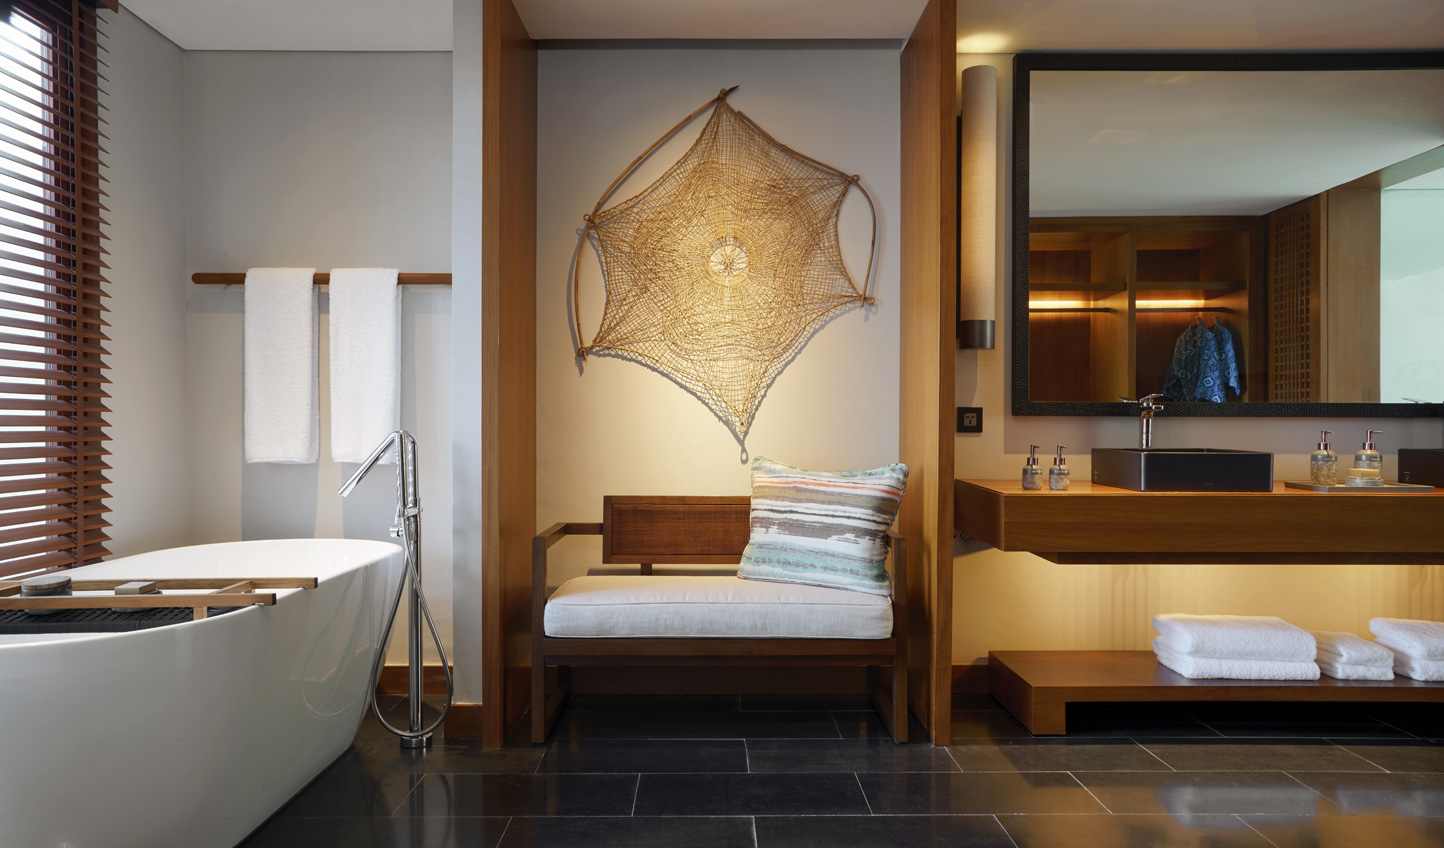 Minimalist with touches of Balinese heritage